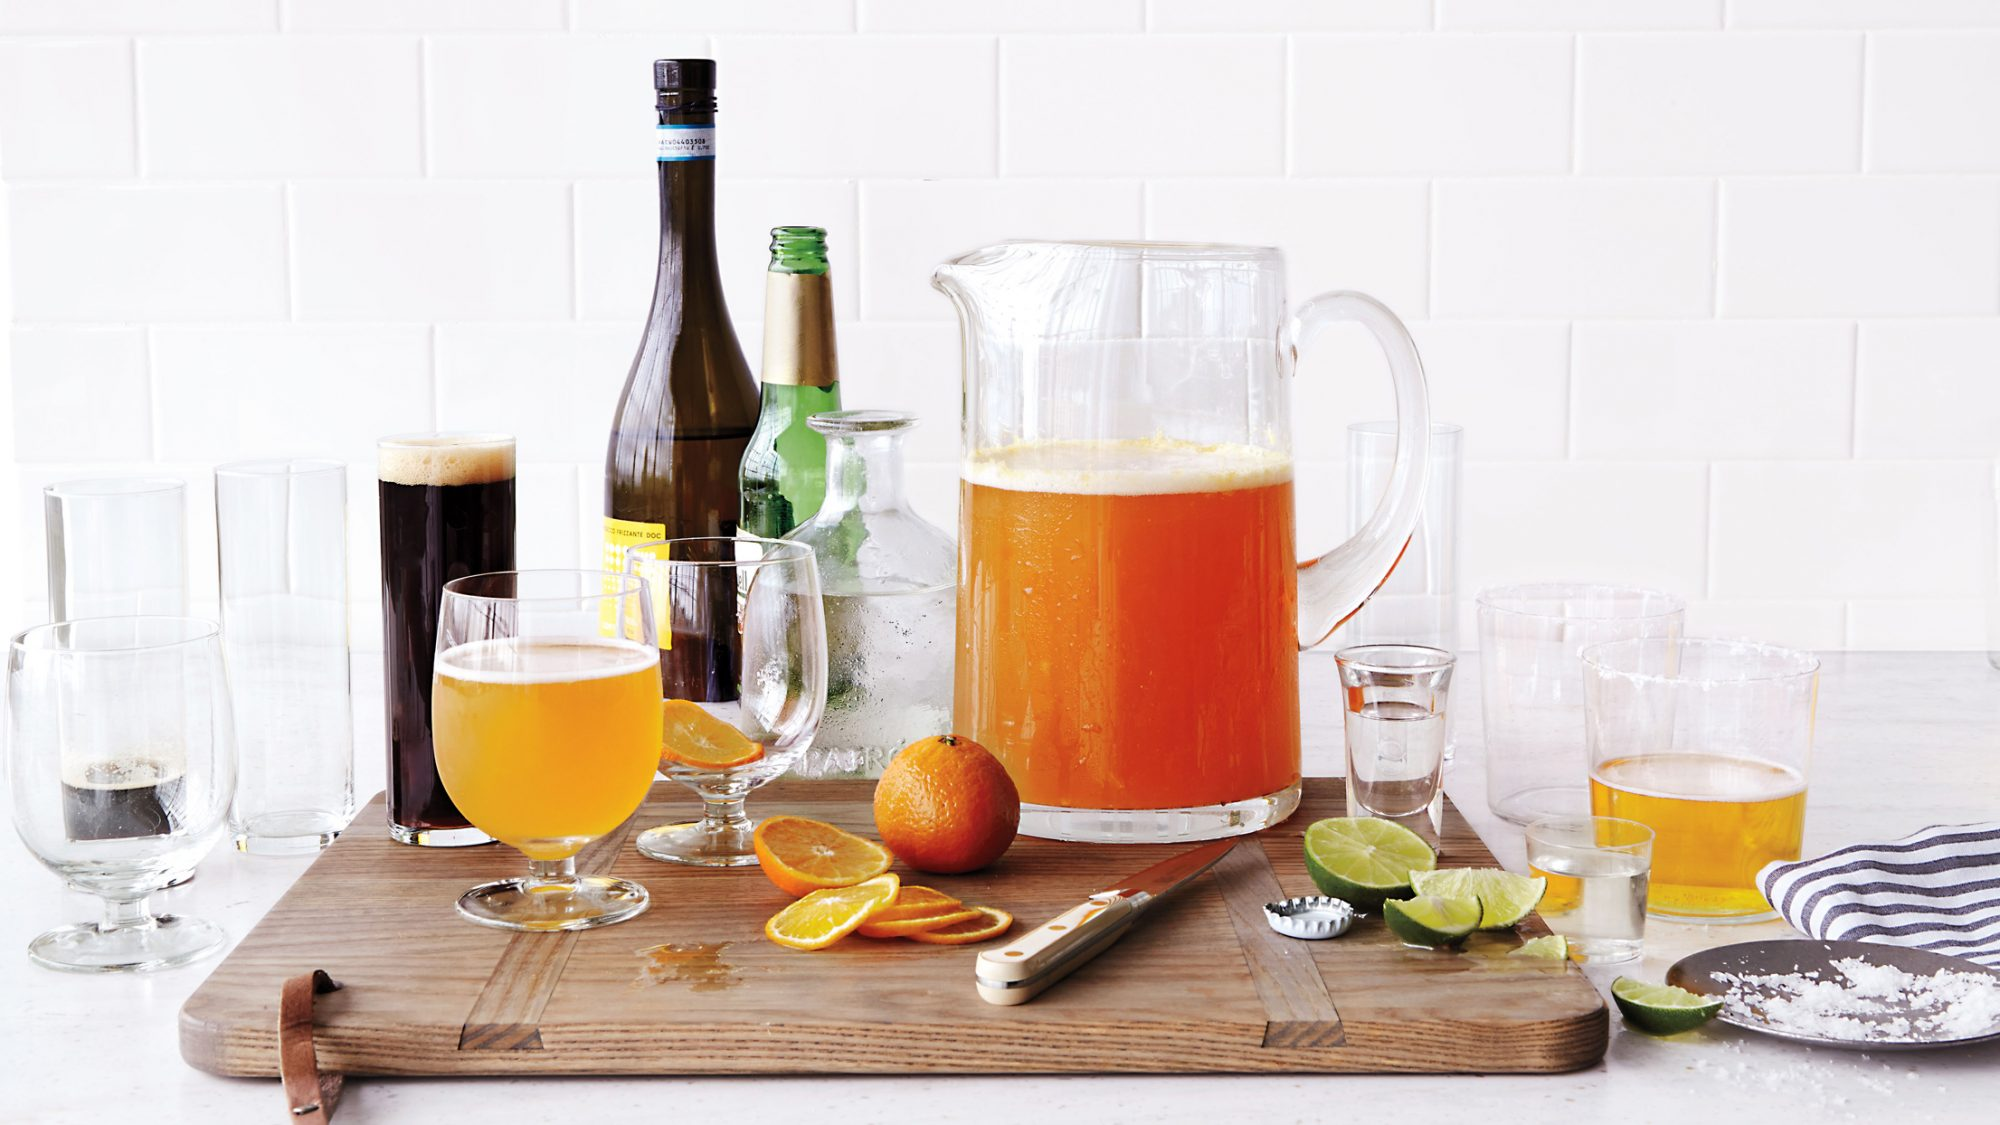 pitcher of beer and sliced oranges and limes atop cutting board